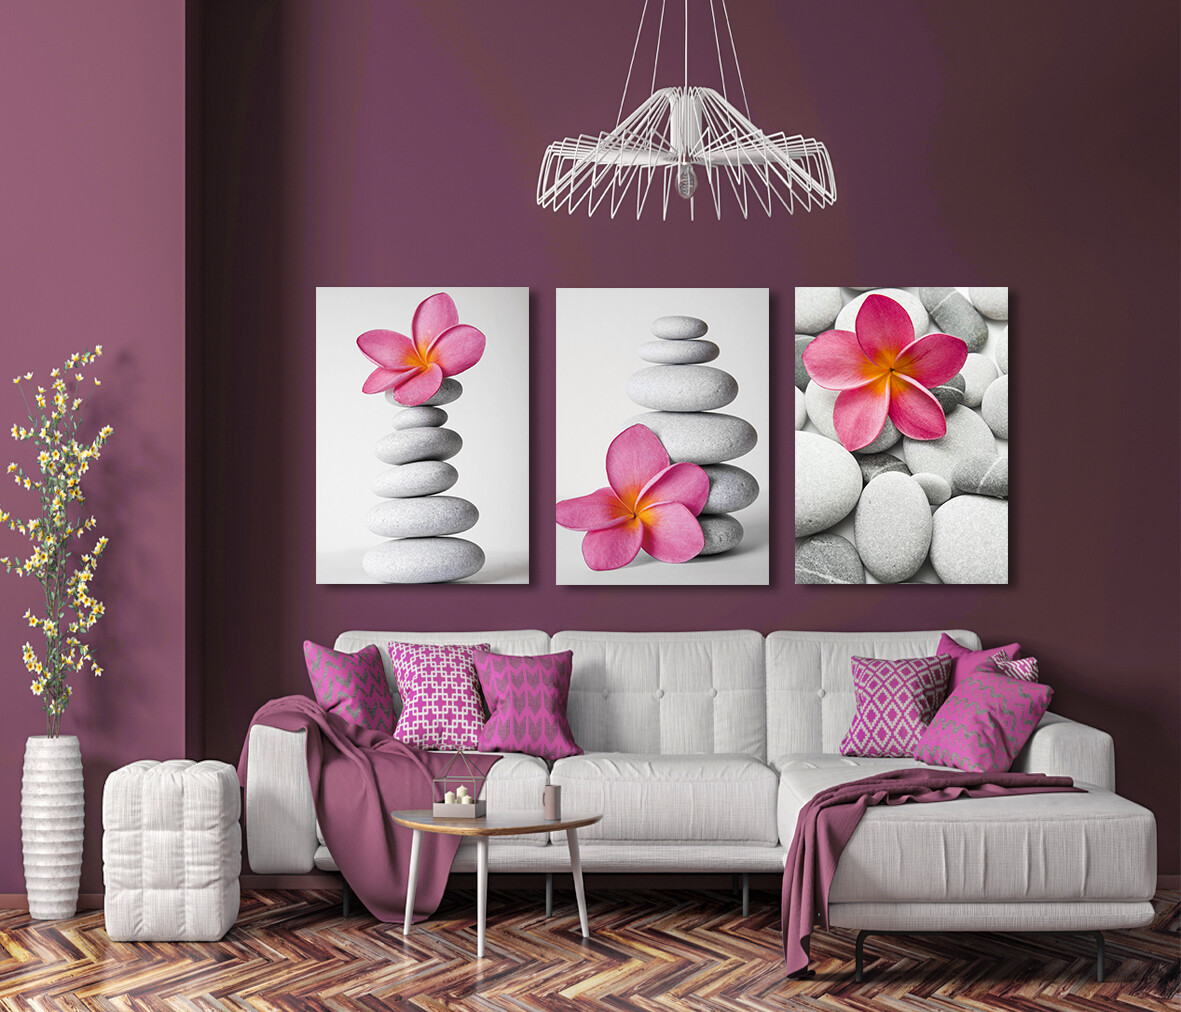 Pink Frangipani  - Modern Luxury Wall art Printed on Acrylic Glass - Frameless and Ready to Hang